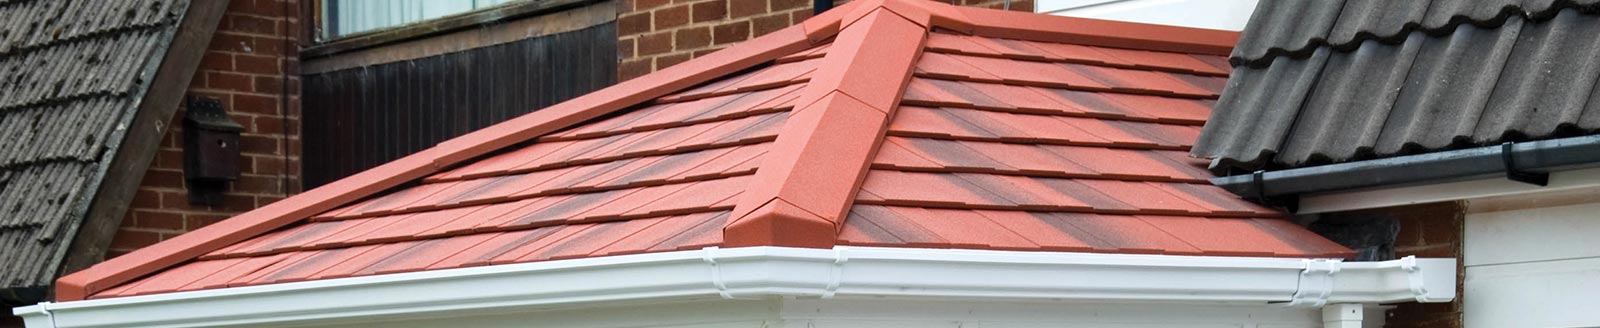 Solid Tile Roof Conservatories